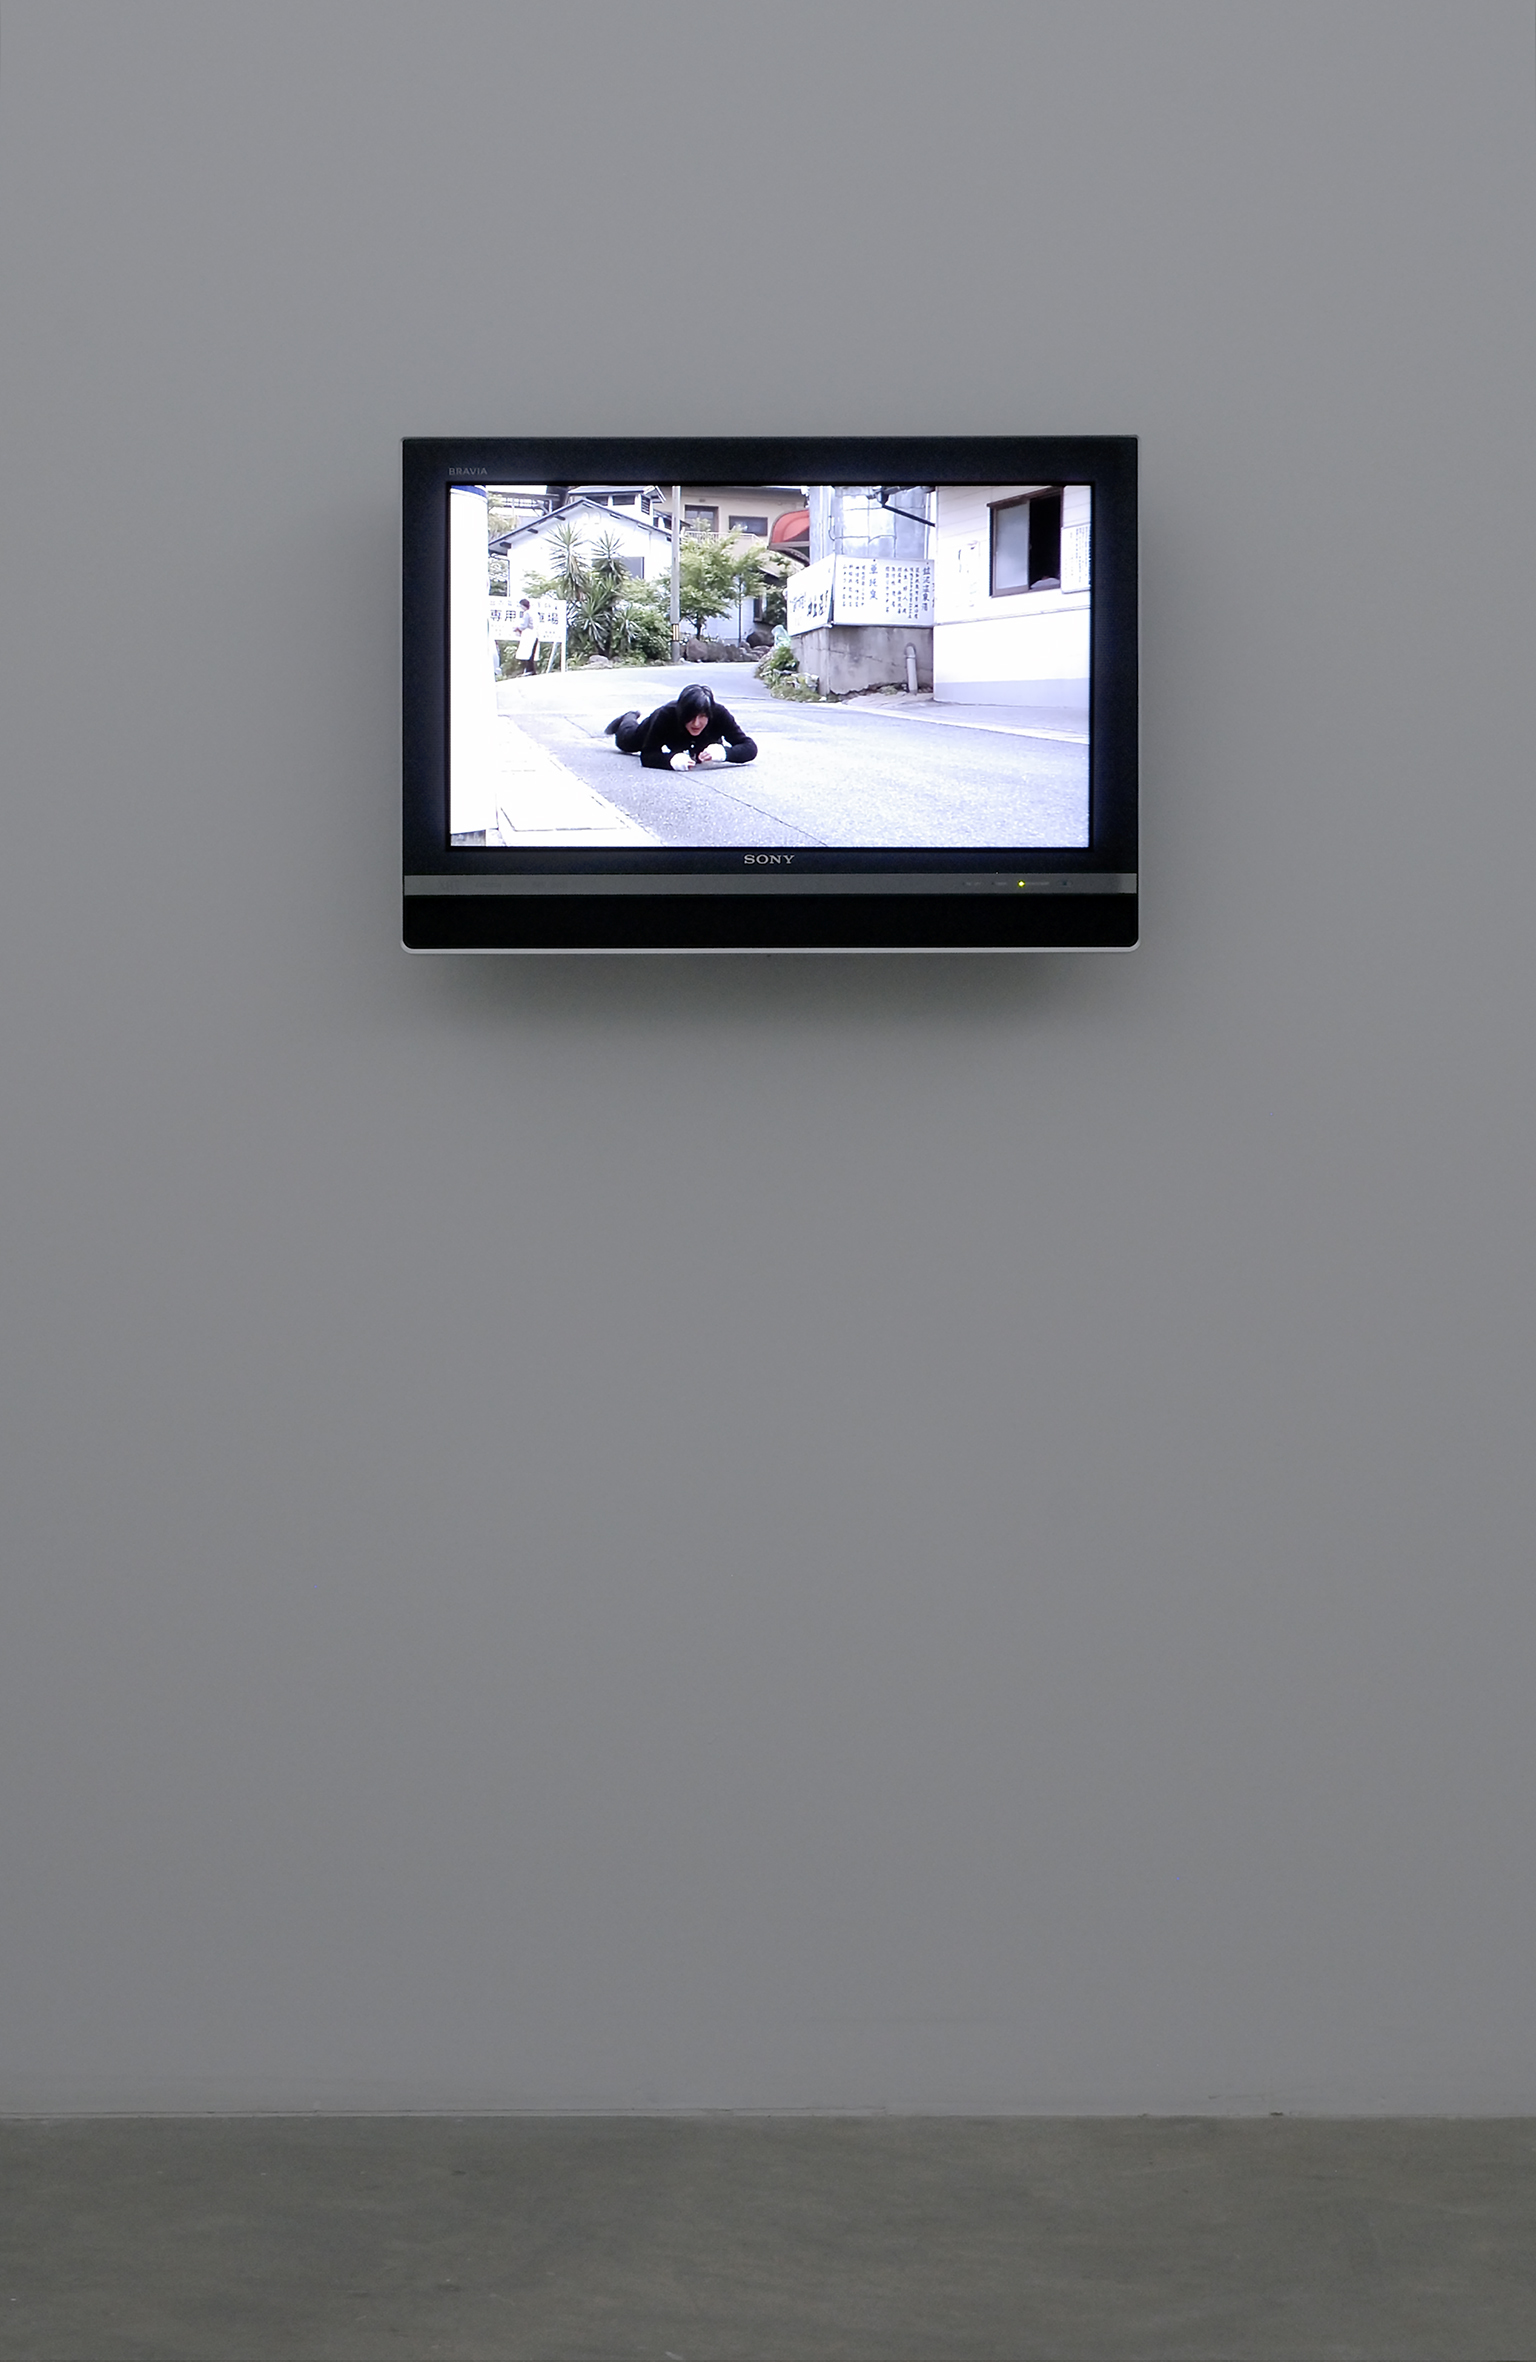 Jin-me Yoon, As It Is Becoming (Beppu, Japan): Atomic Treatment Centre, Onsen, 2008, single channel HD video, 10 minutes, 33 seconds   by